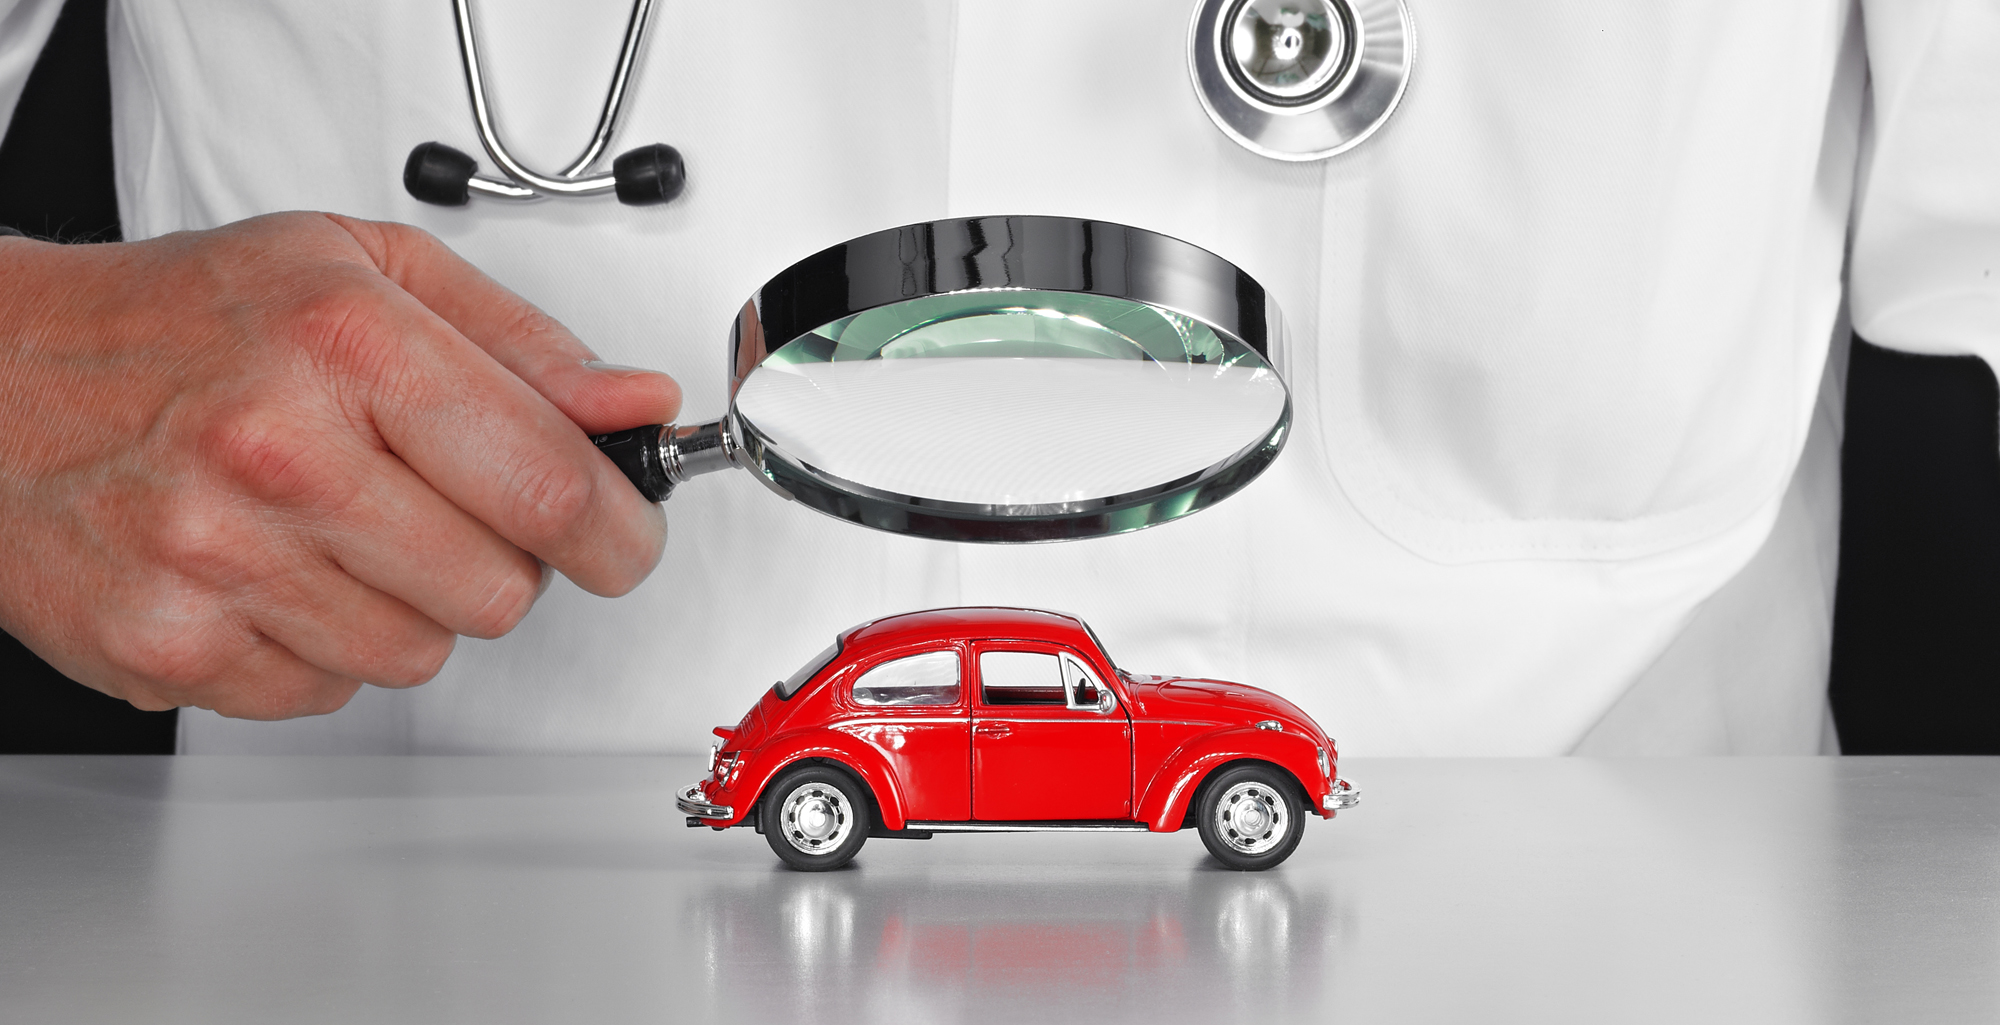 A car doctor looking at a red car model through a magnifying glass